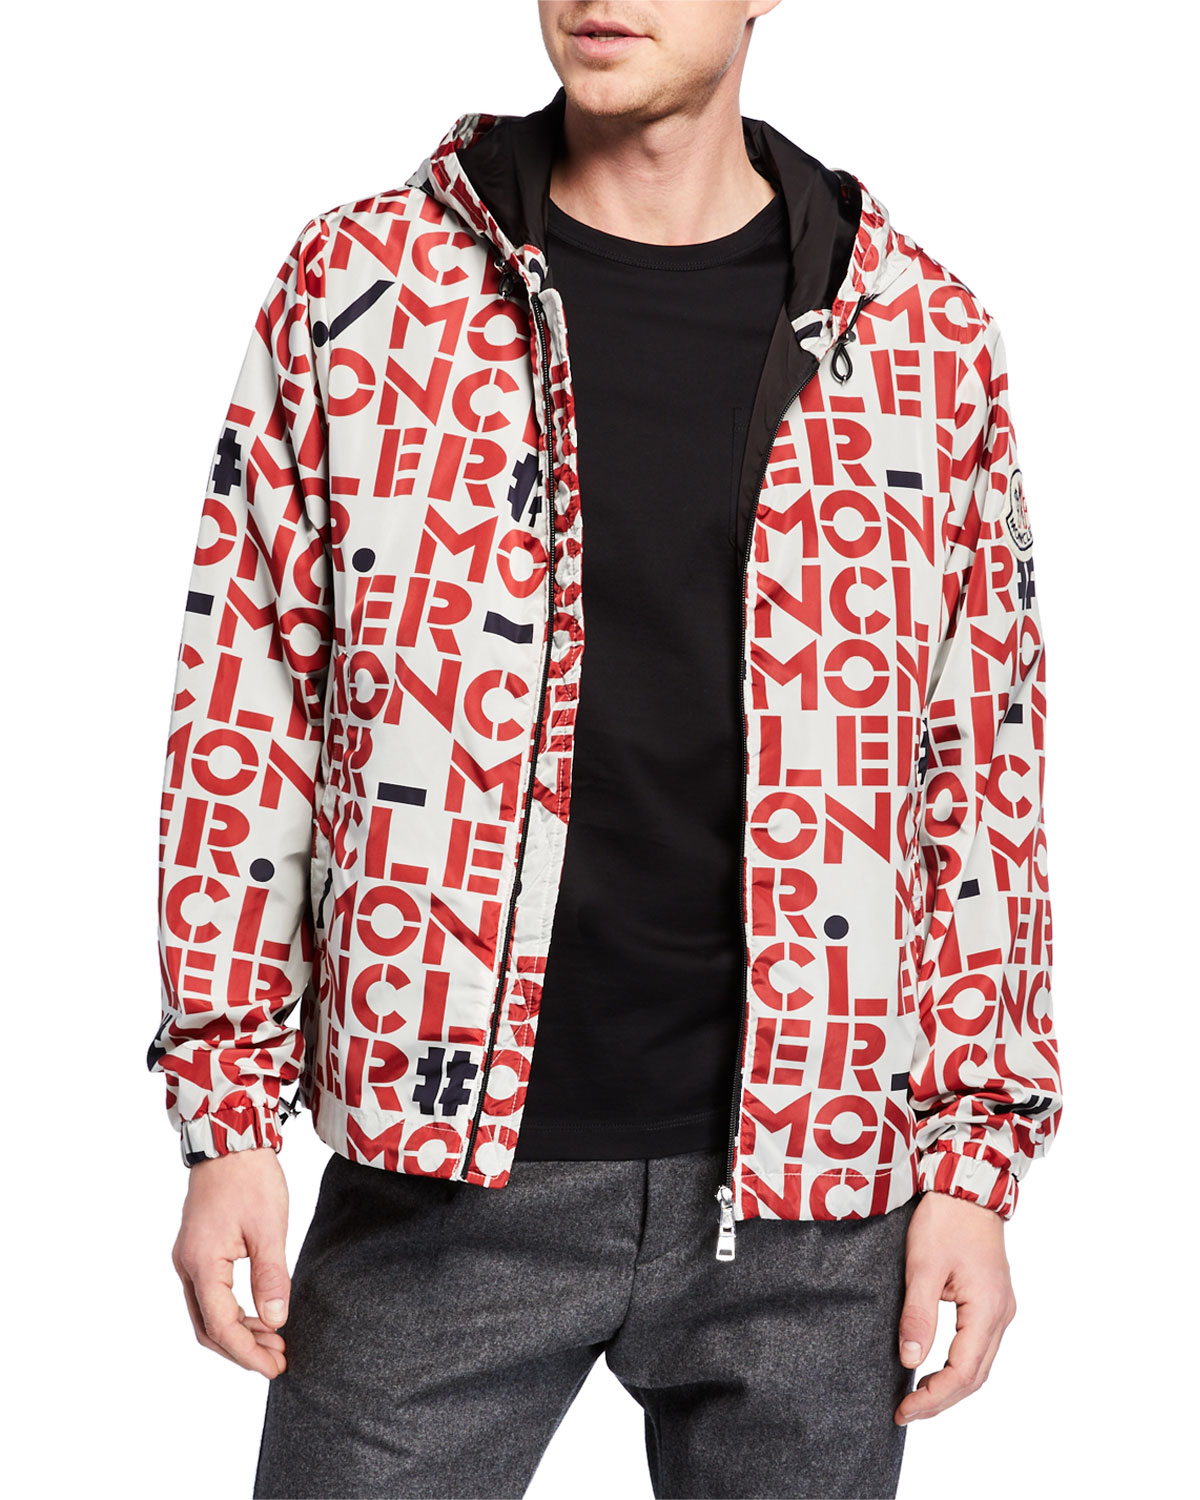 Men's Dorfman Block Logo Print Jacket by Moncler Genius